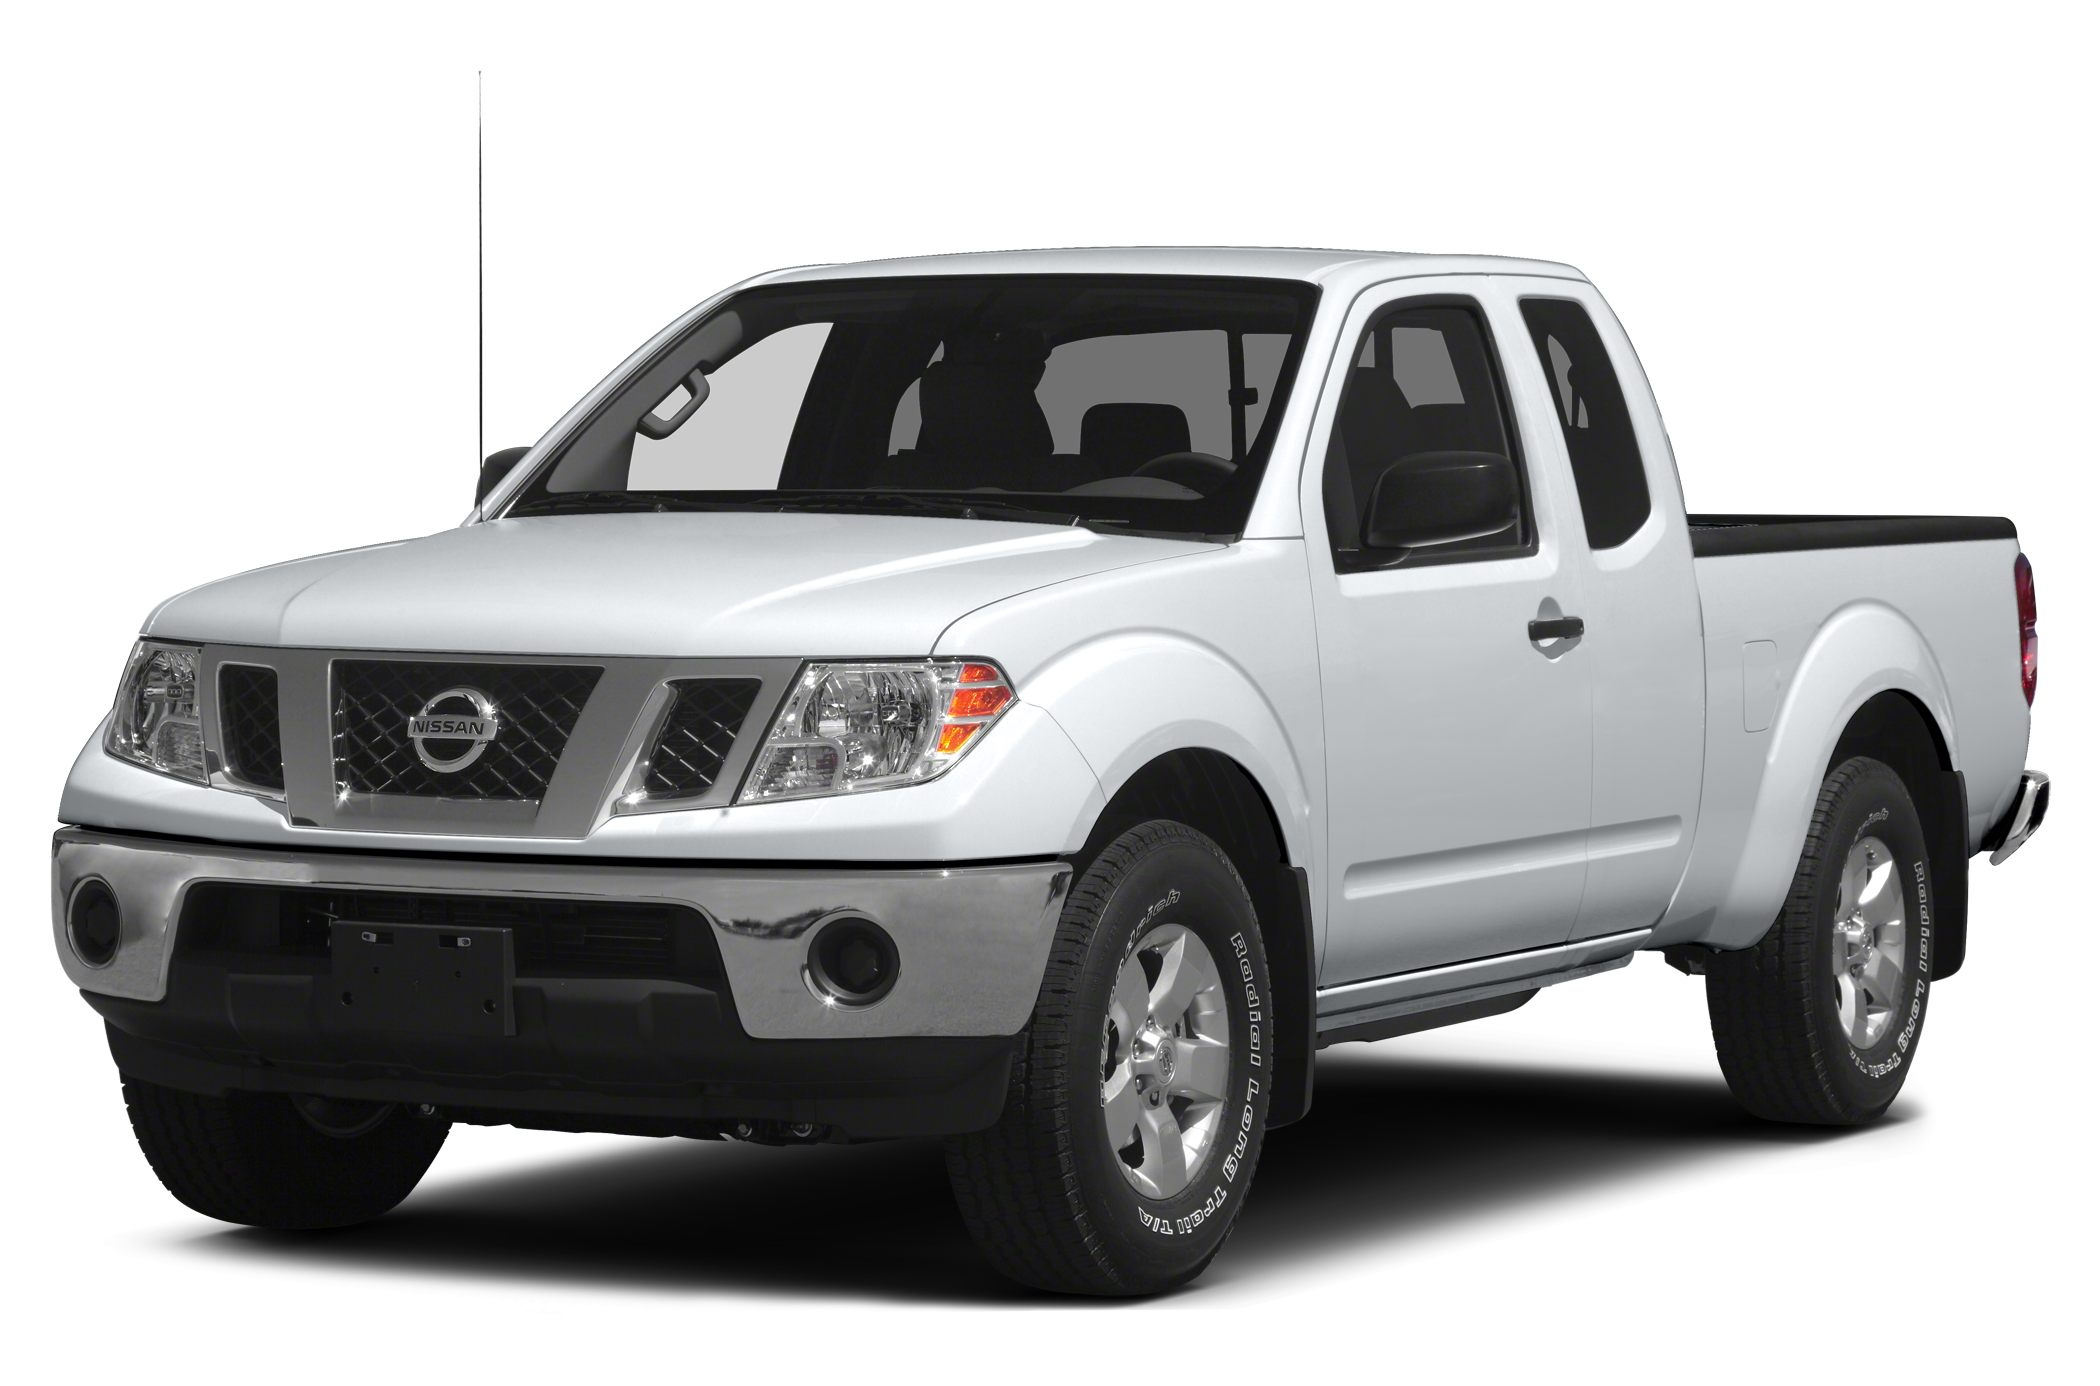 2014 Nissan Frontier S Crew Cab Pickup for sale in Sylacauga for $22,578 with 7,569 miles.